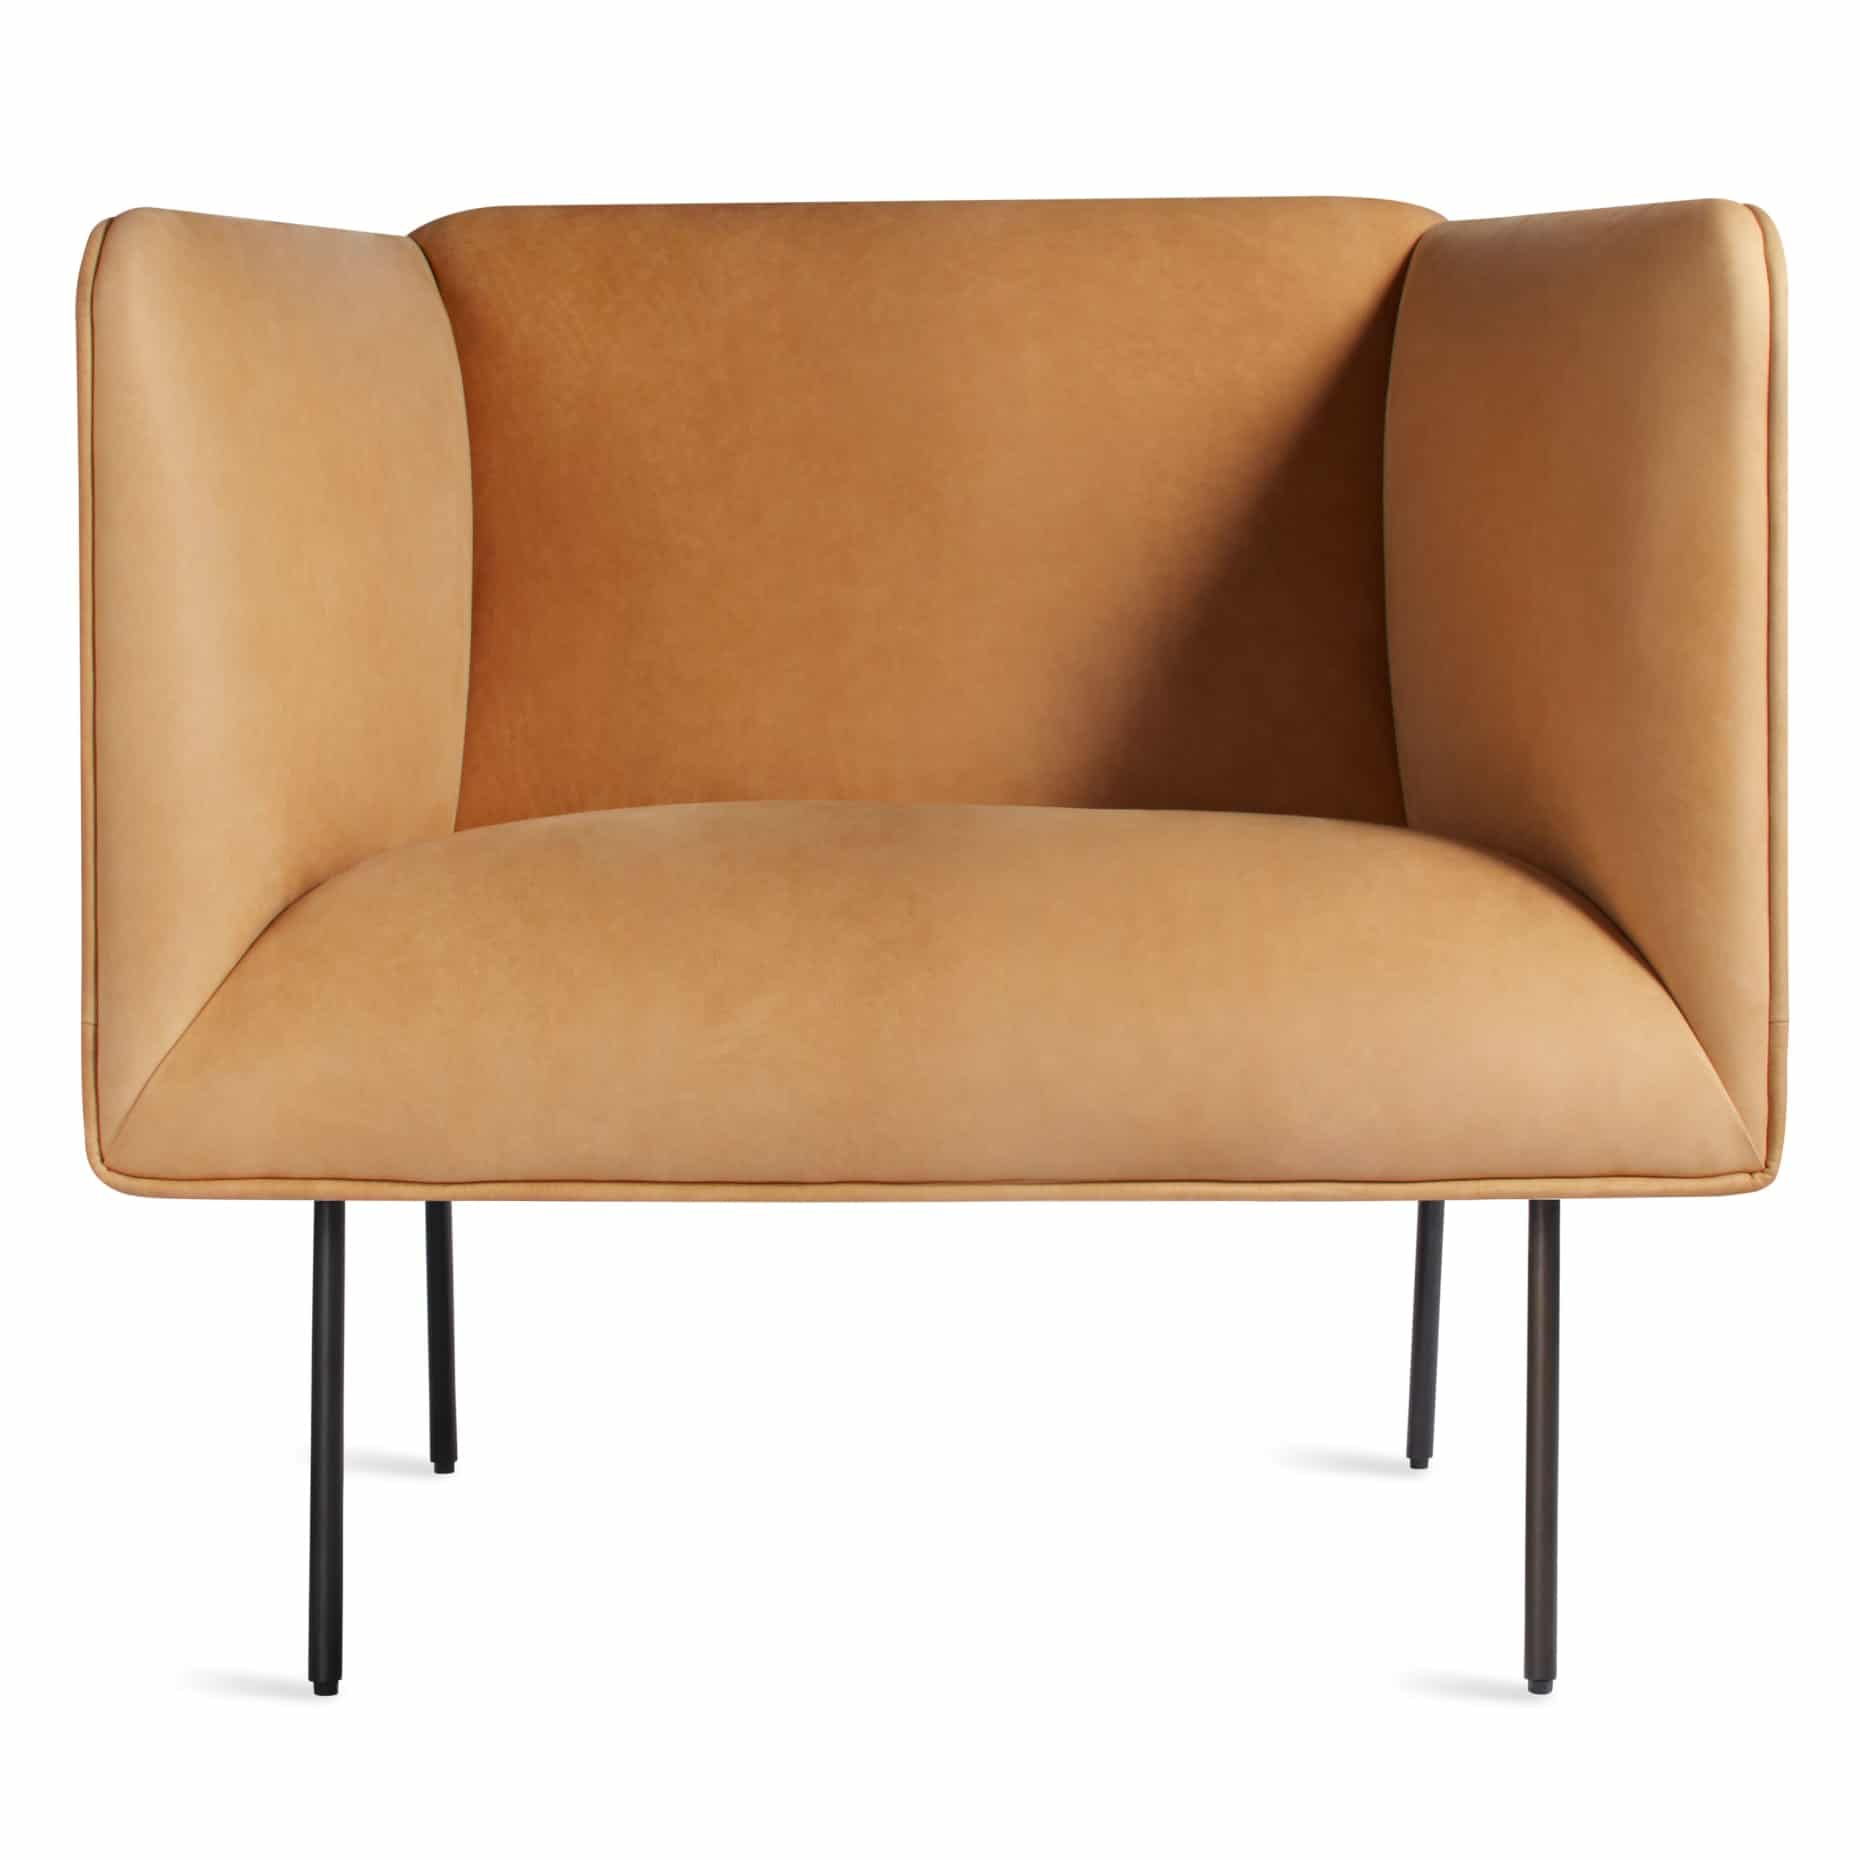 dn1 lngchr ca dandy louge chair camel leather